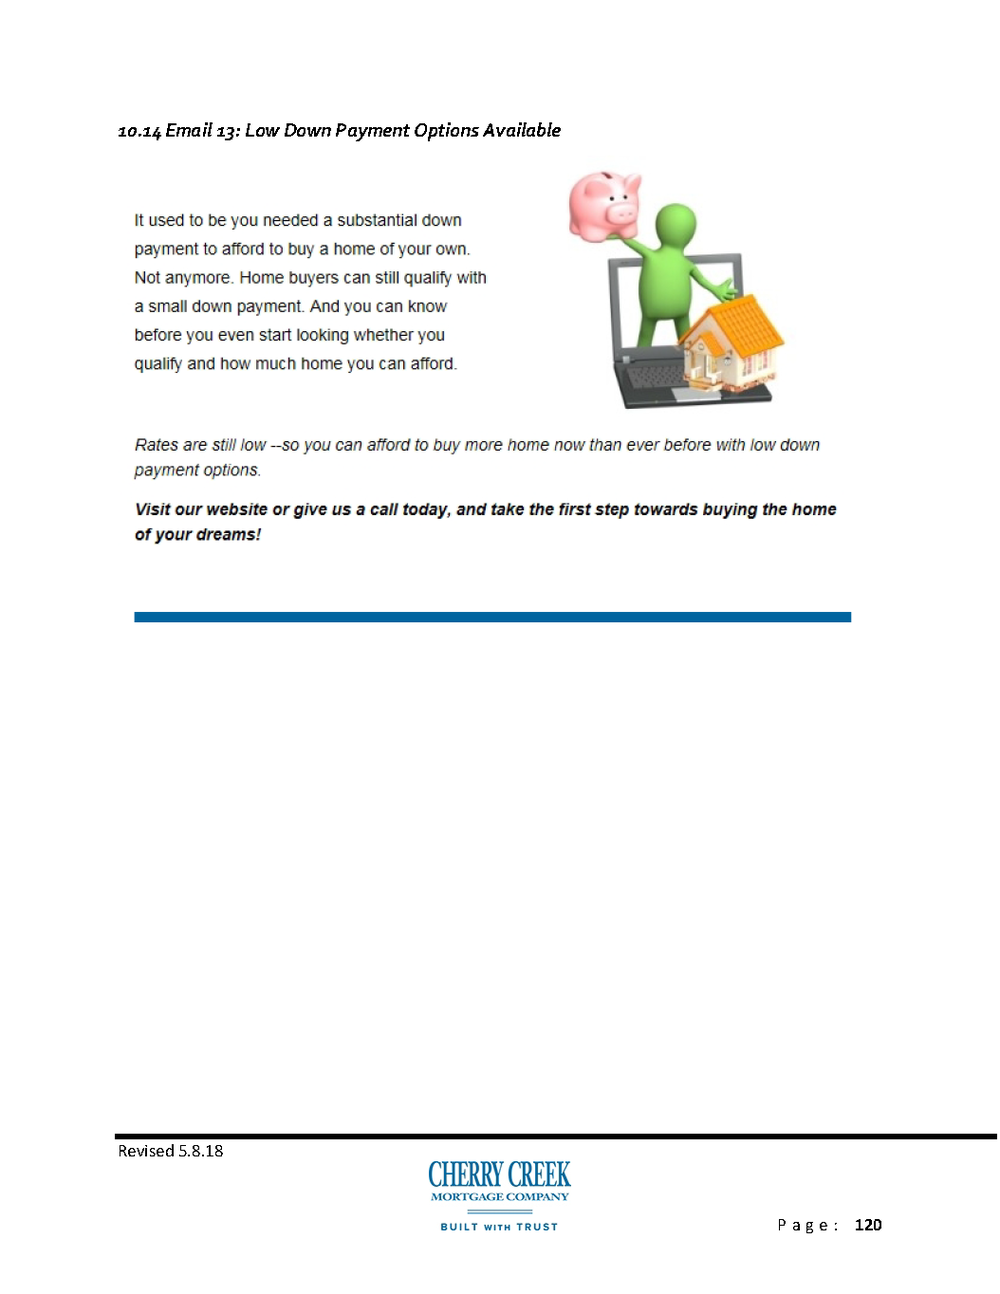 Jungo_Email_Drip_Campaigns-Consumers_D1O6plI_Page_120.png